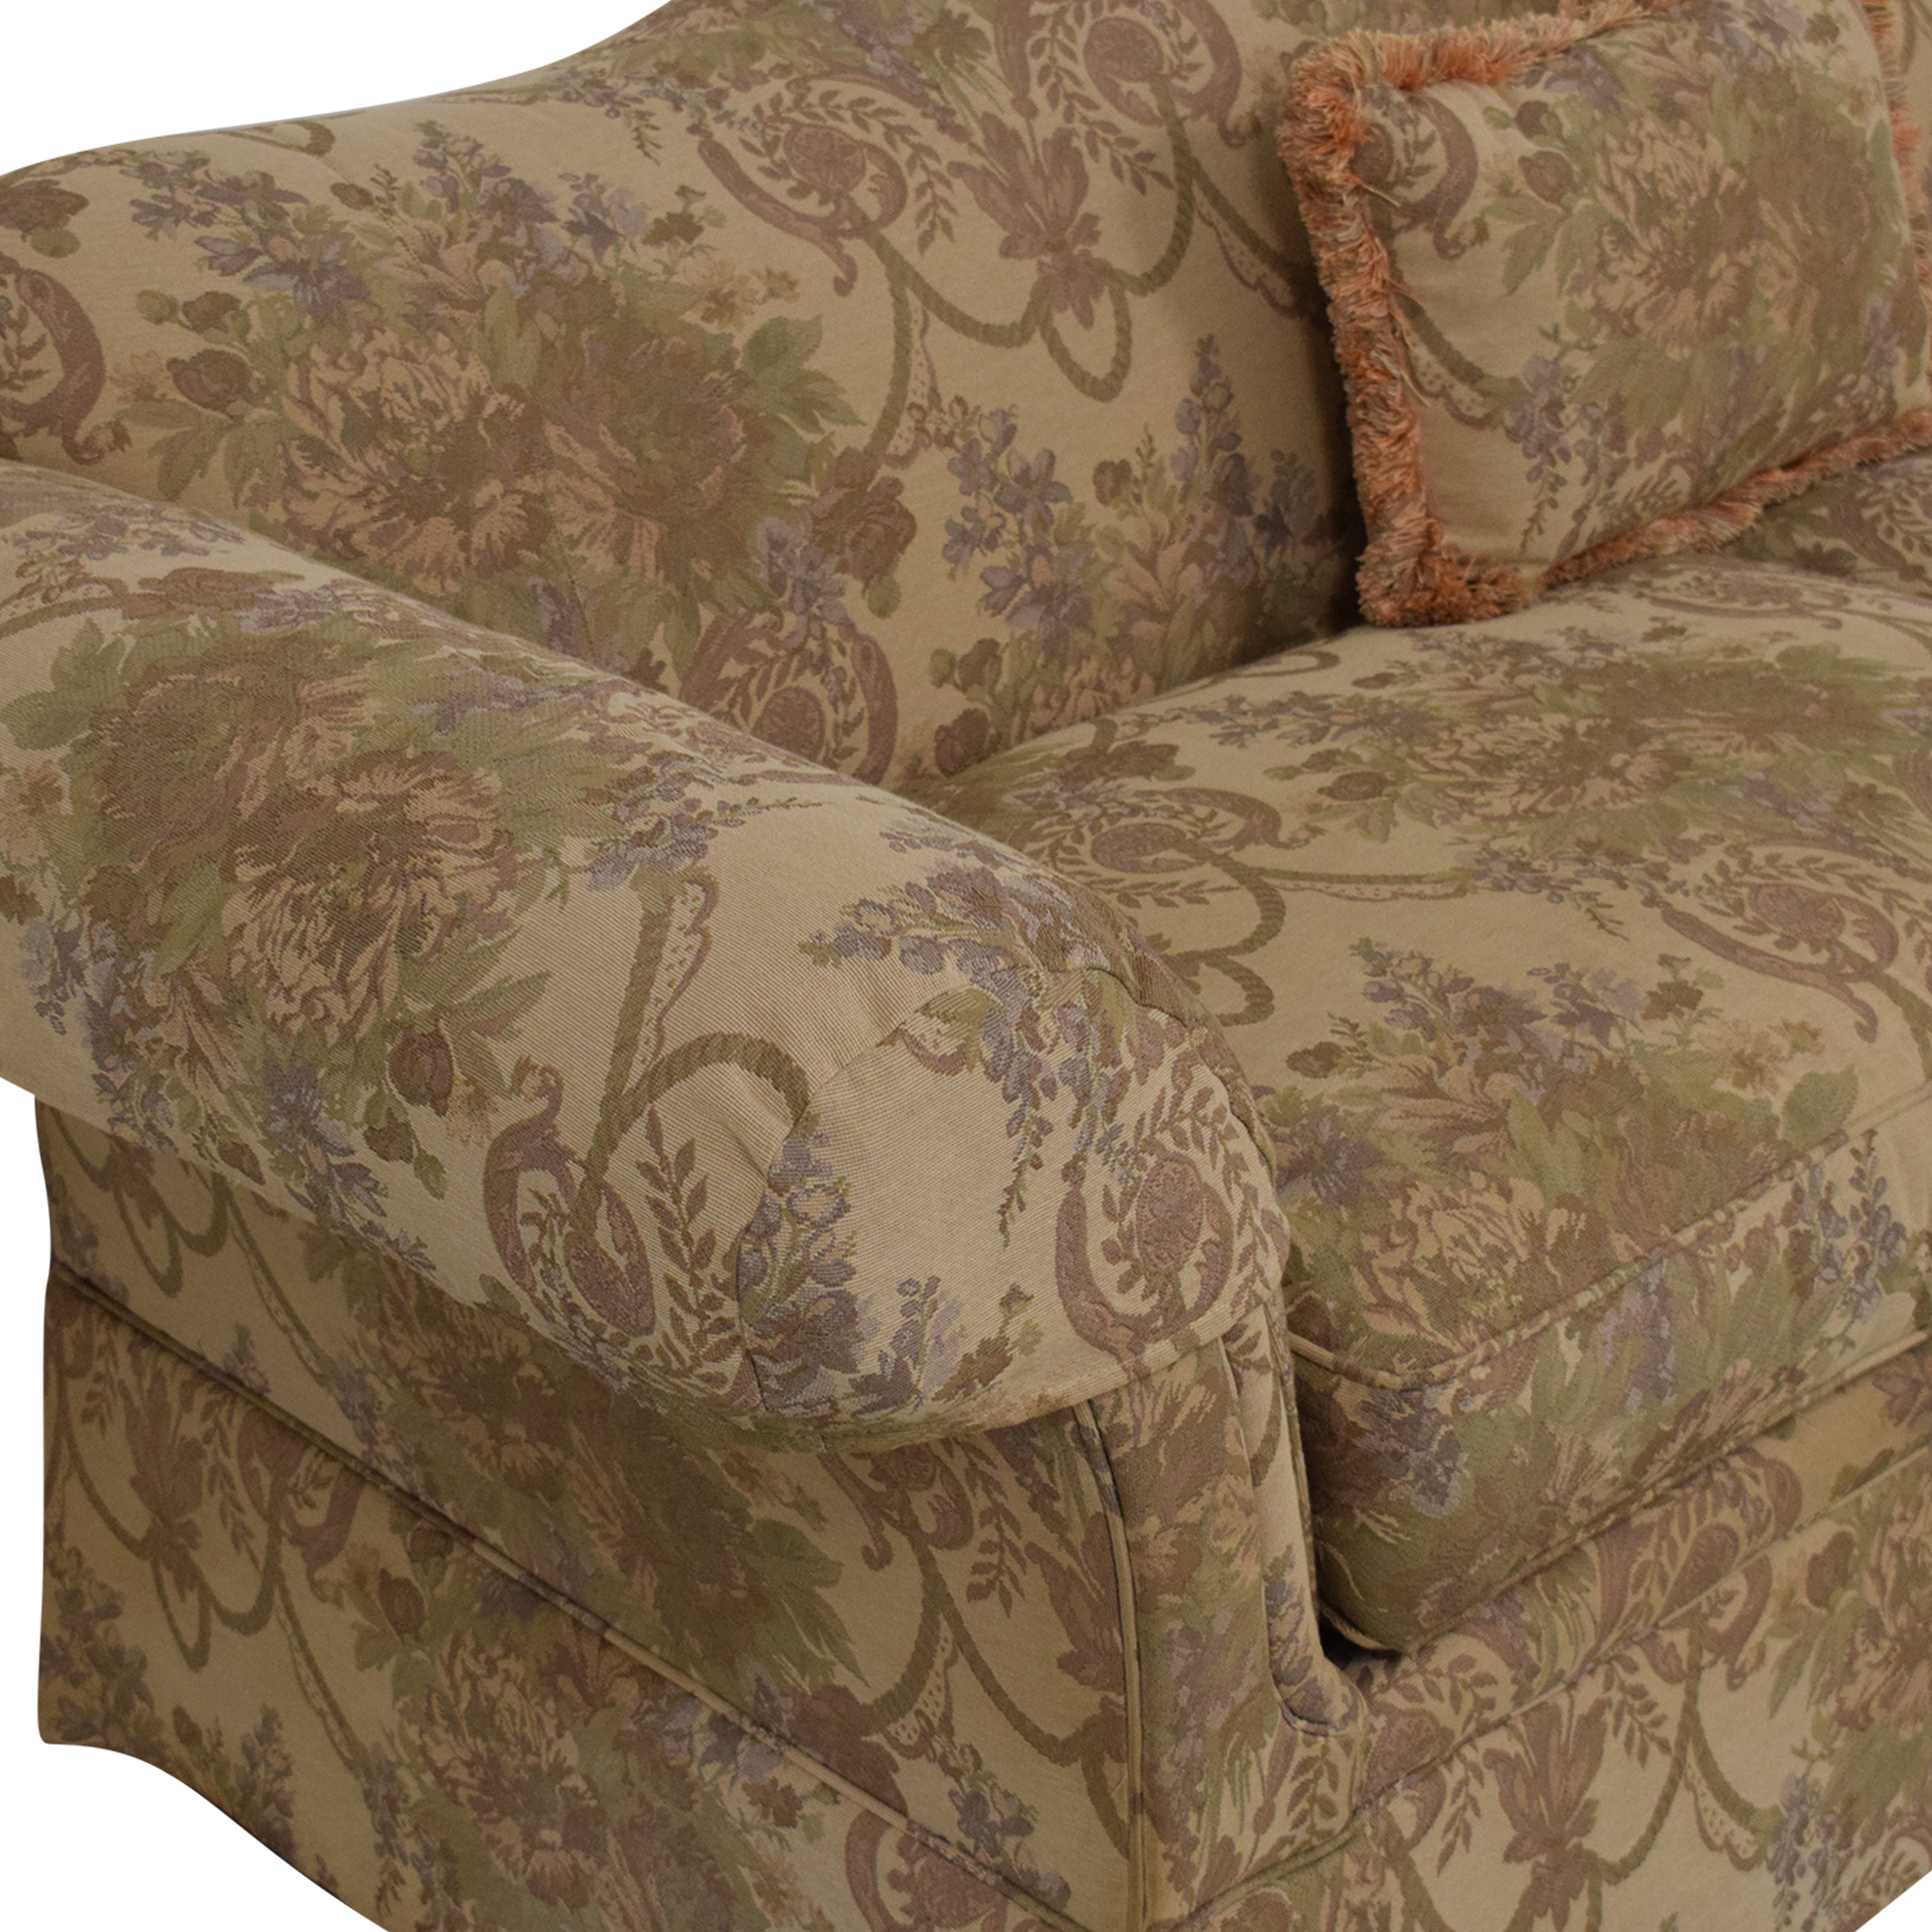 Highland House Camelback Sofa sale